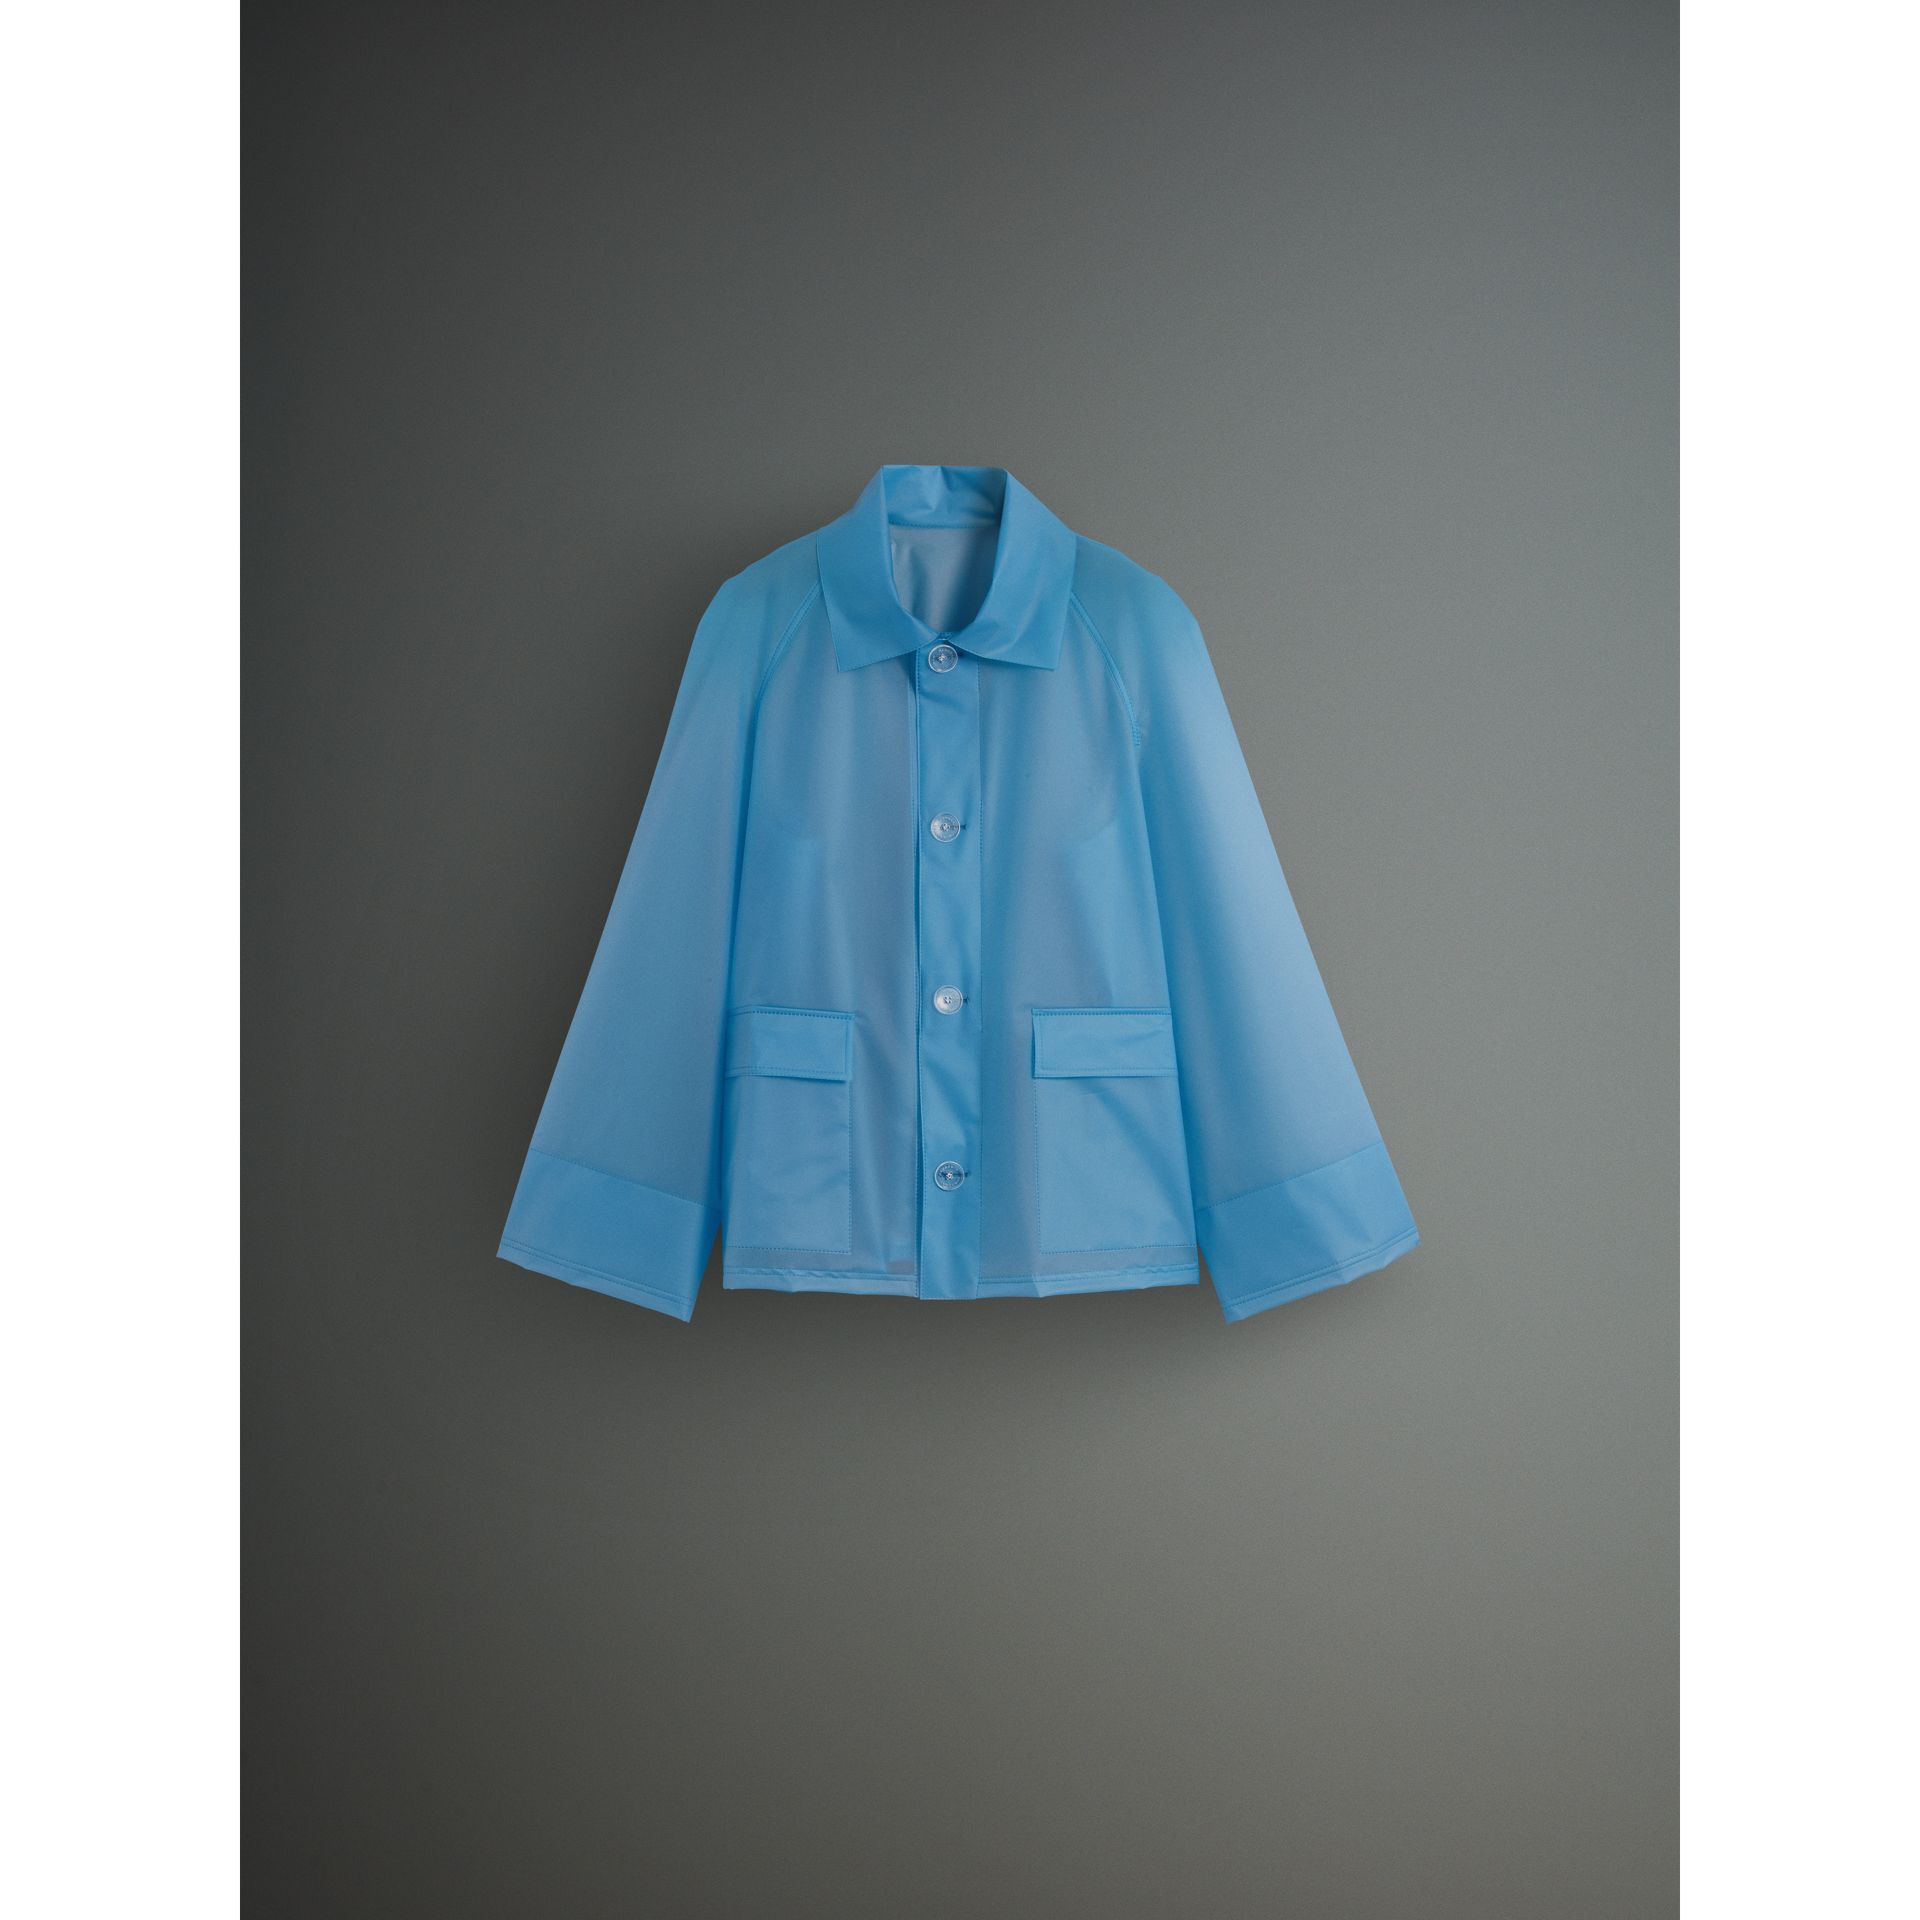 Soft-touch Plastic Jacket in Sky Blue - Men | Burberry United Kingdom - gallery image 3